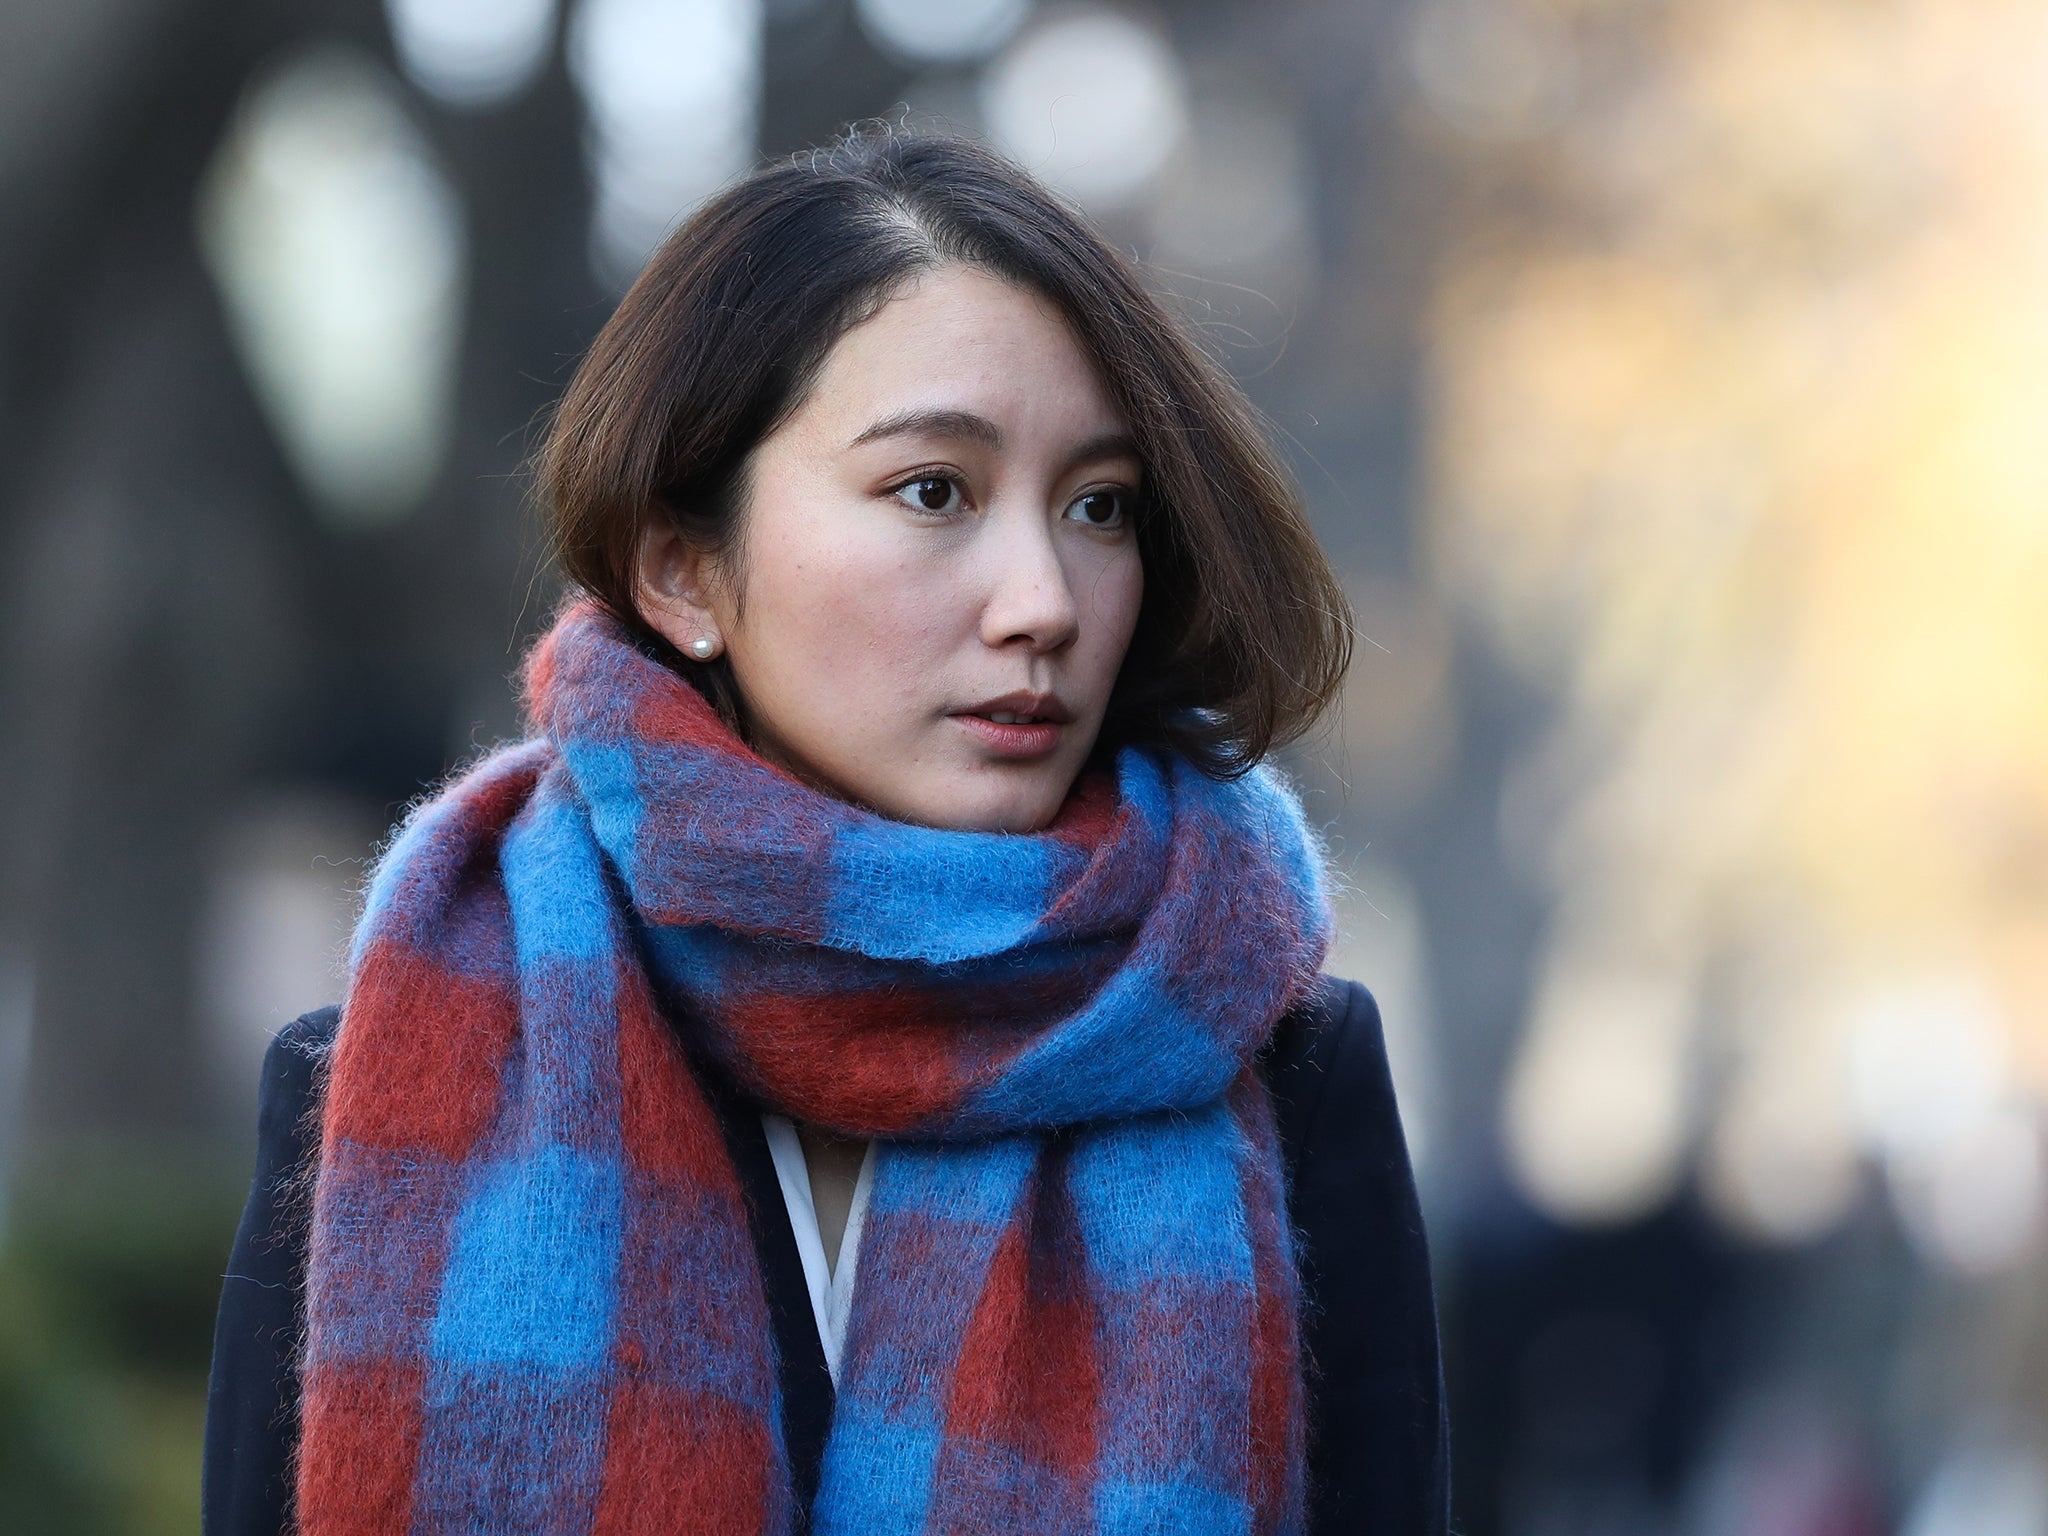 Shiori Ito: Japanese journalist and symbol of MeToo movement awarded 21,000 in damages in rape case